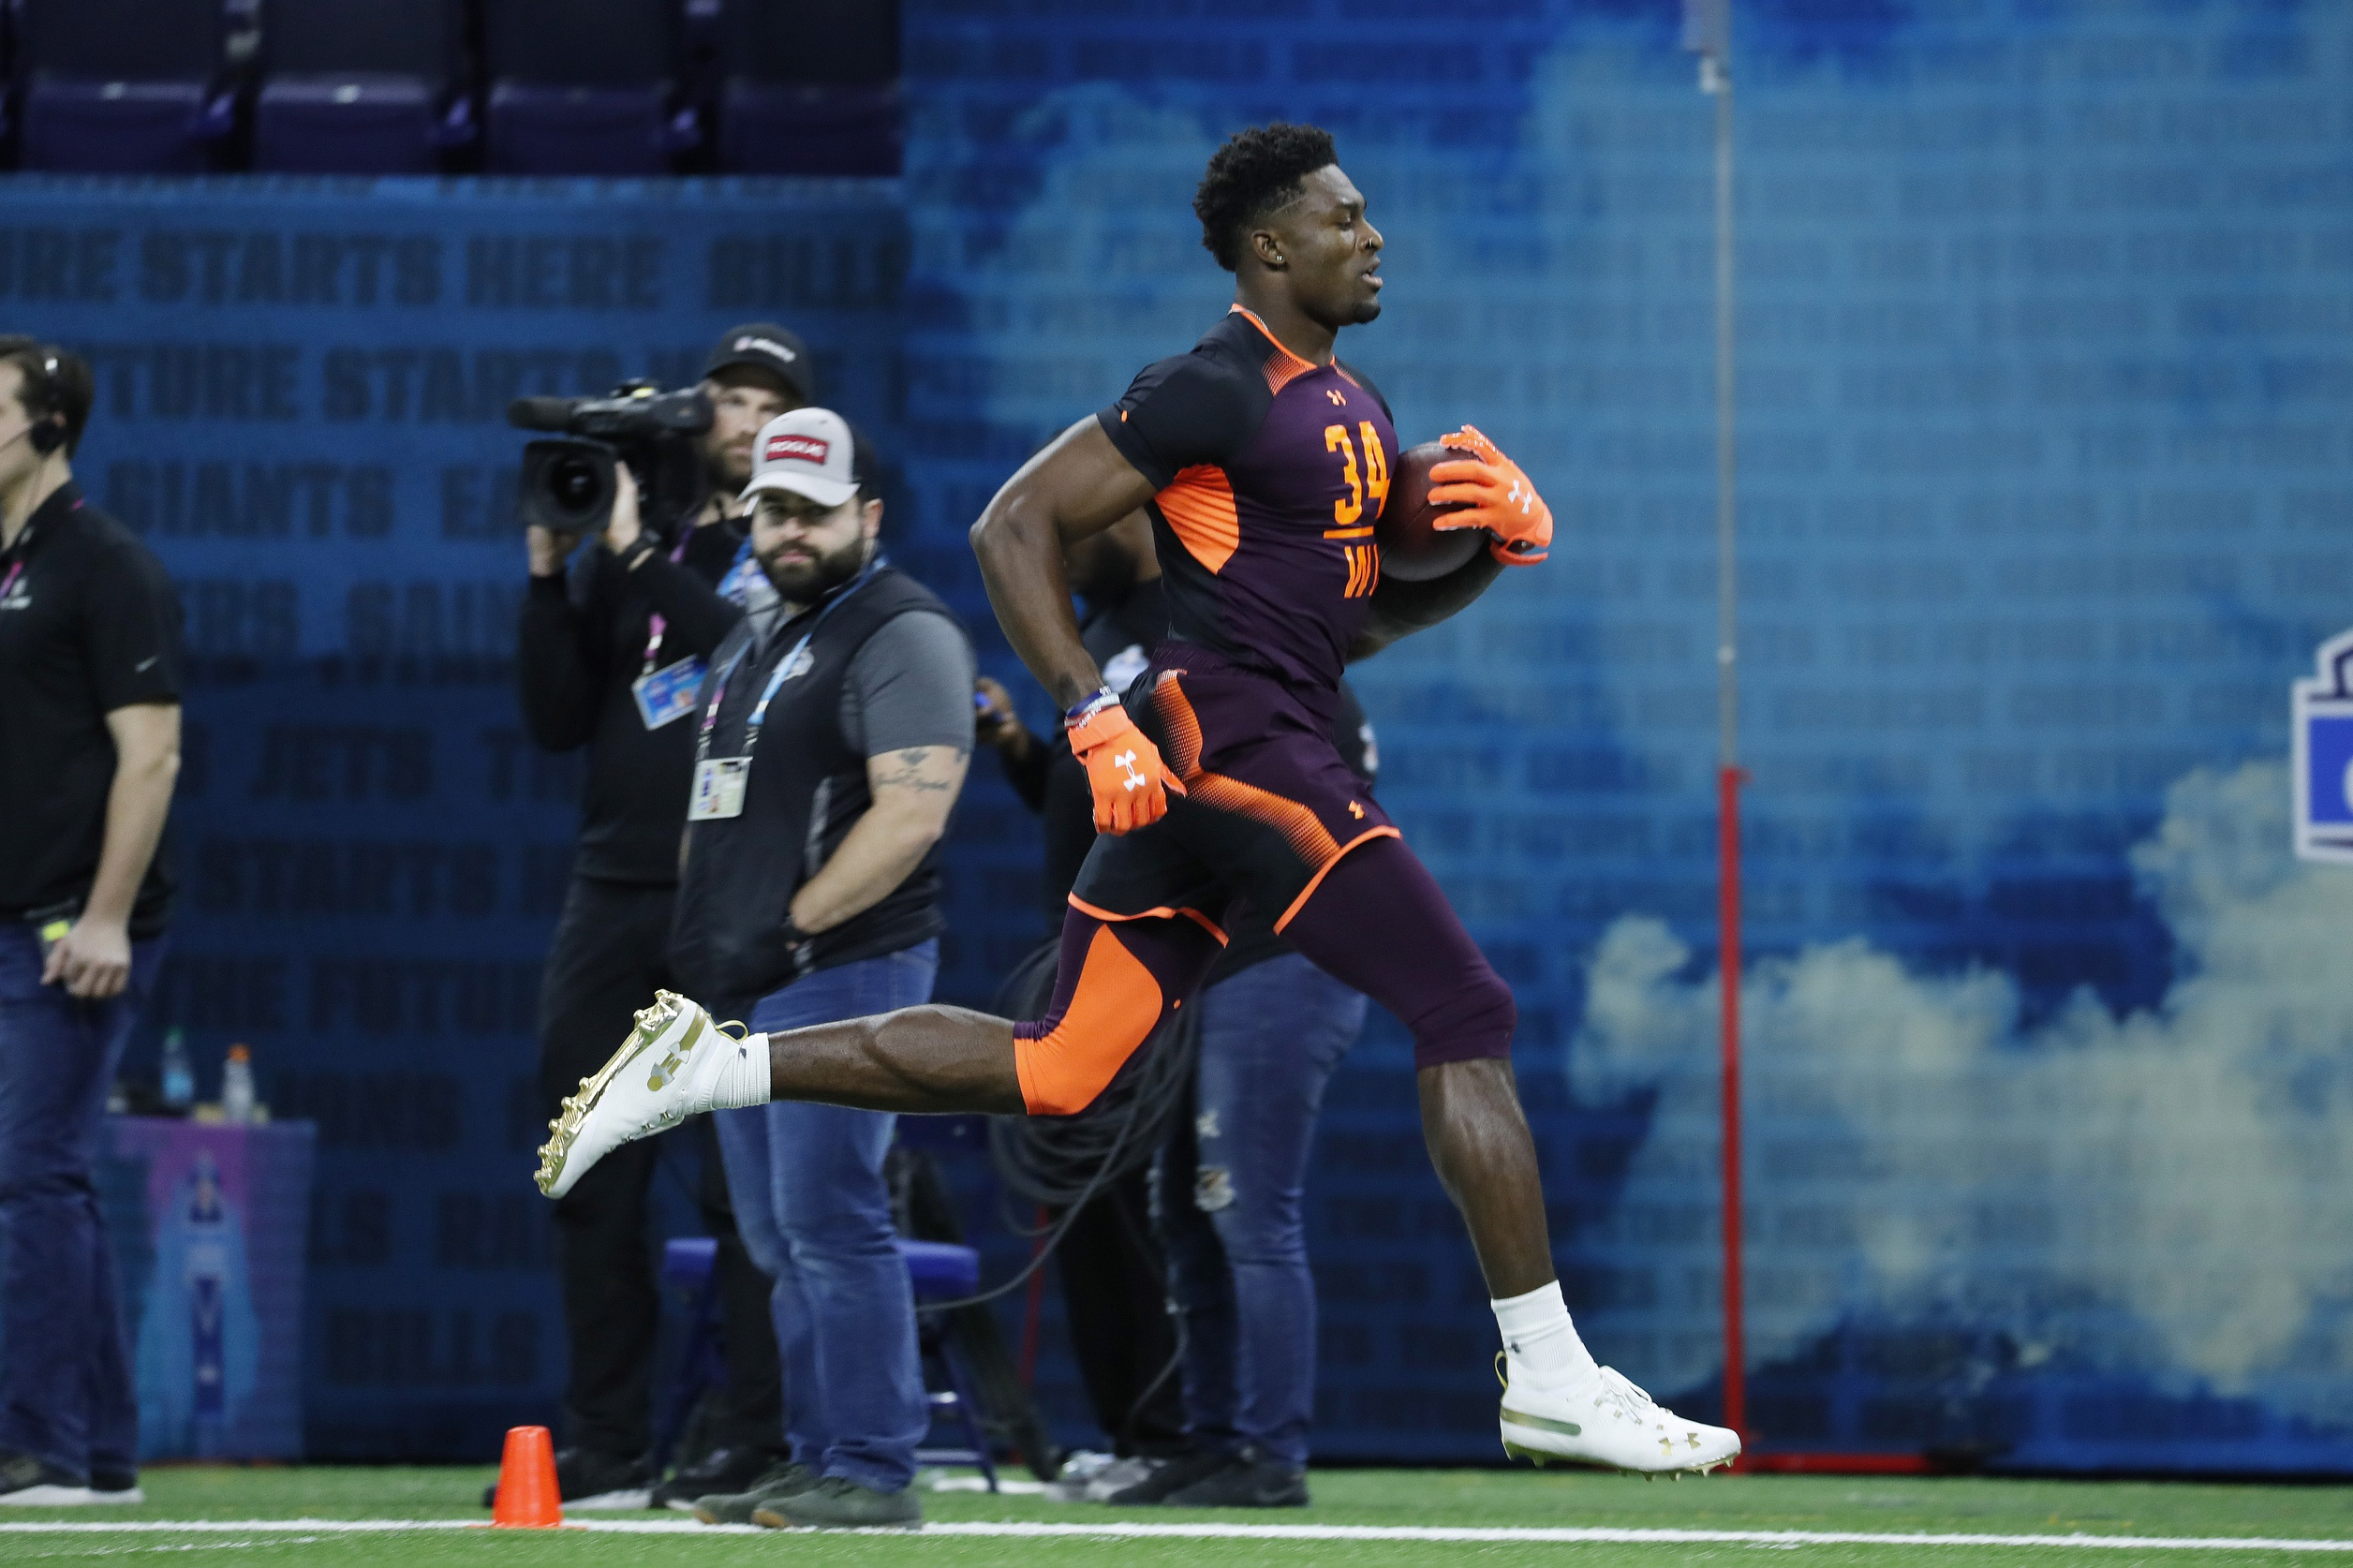 Ray Lucas erupts in hysterics after New York Giants pick Daniel Jones